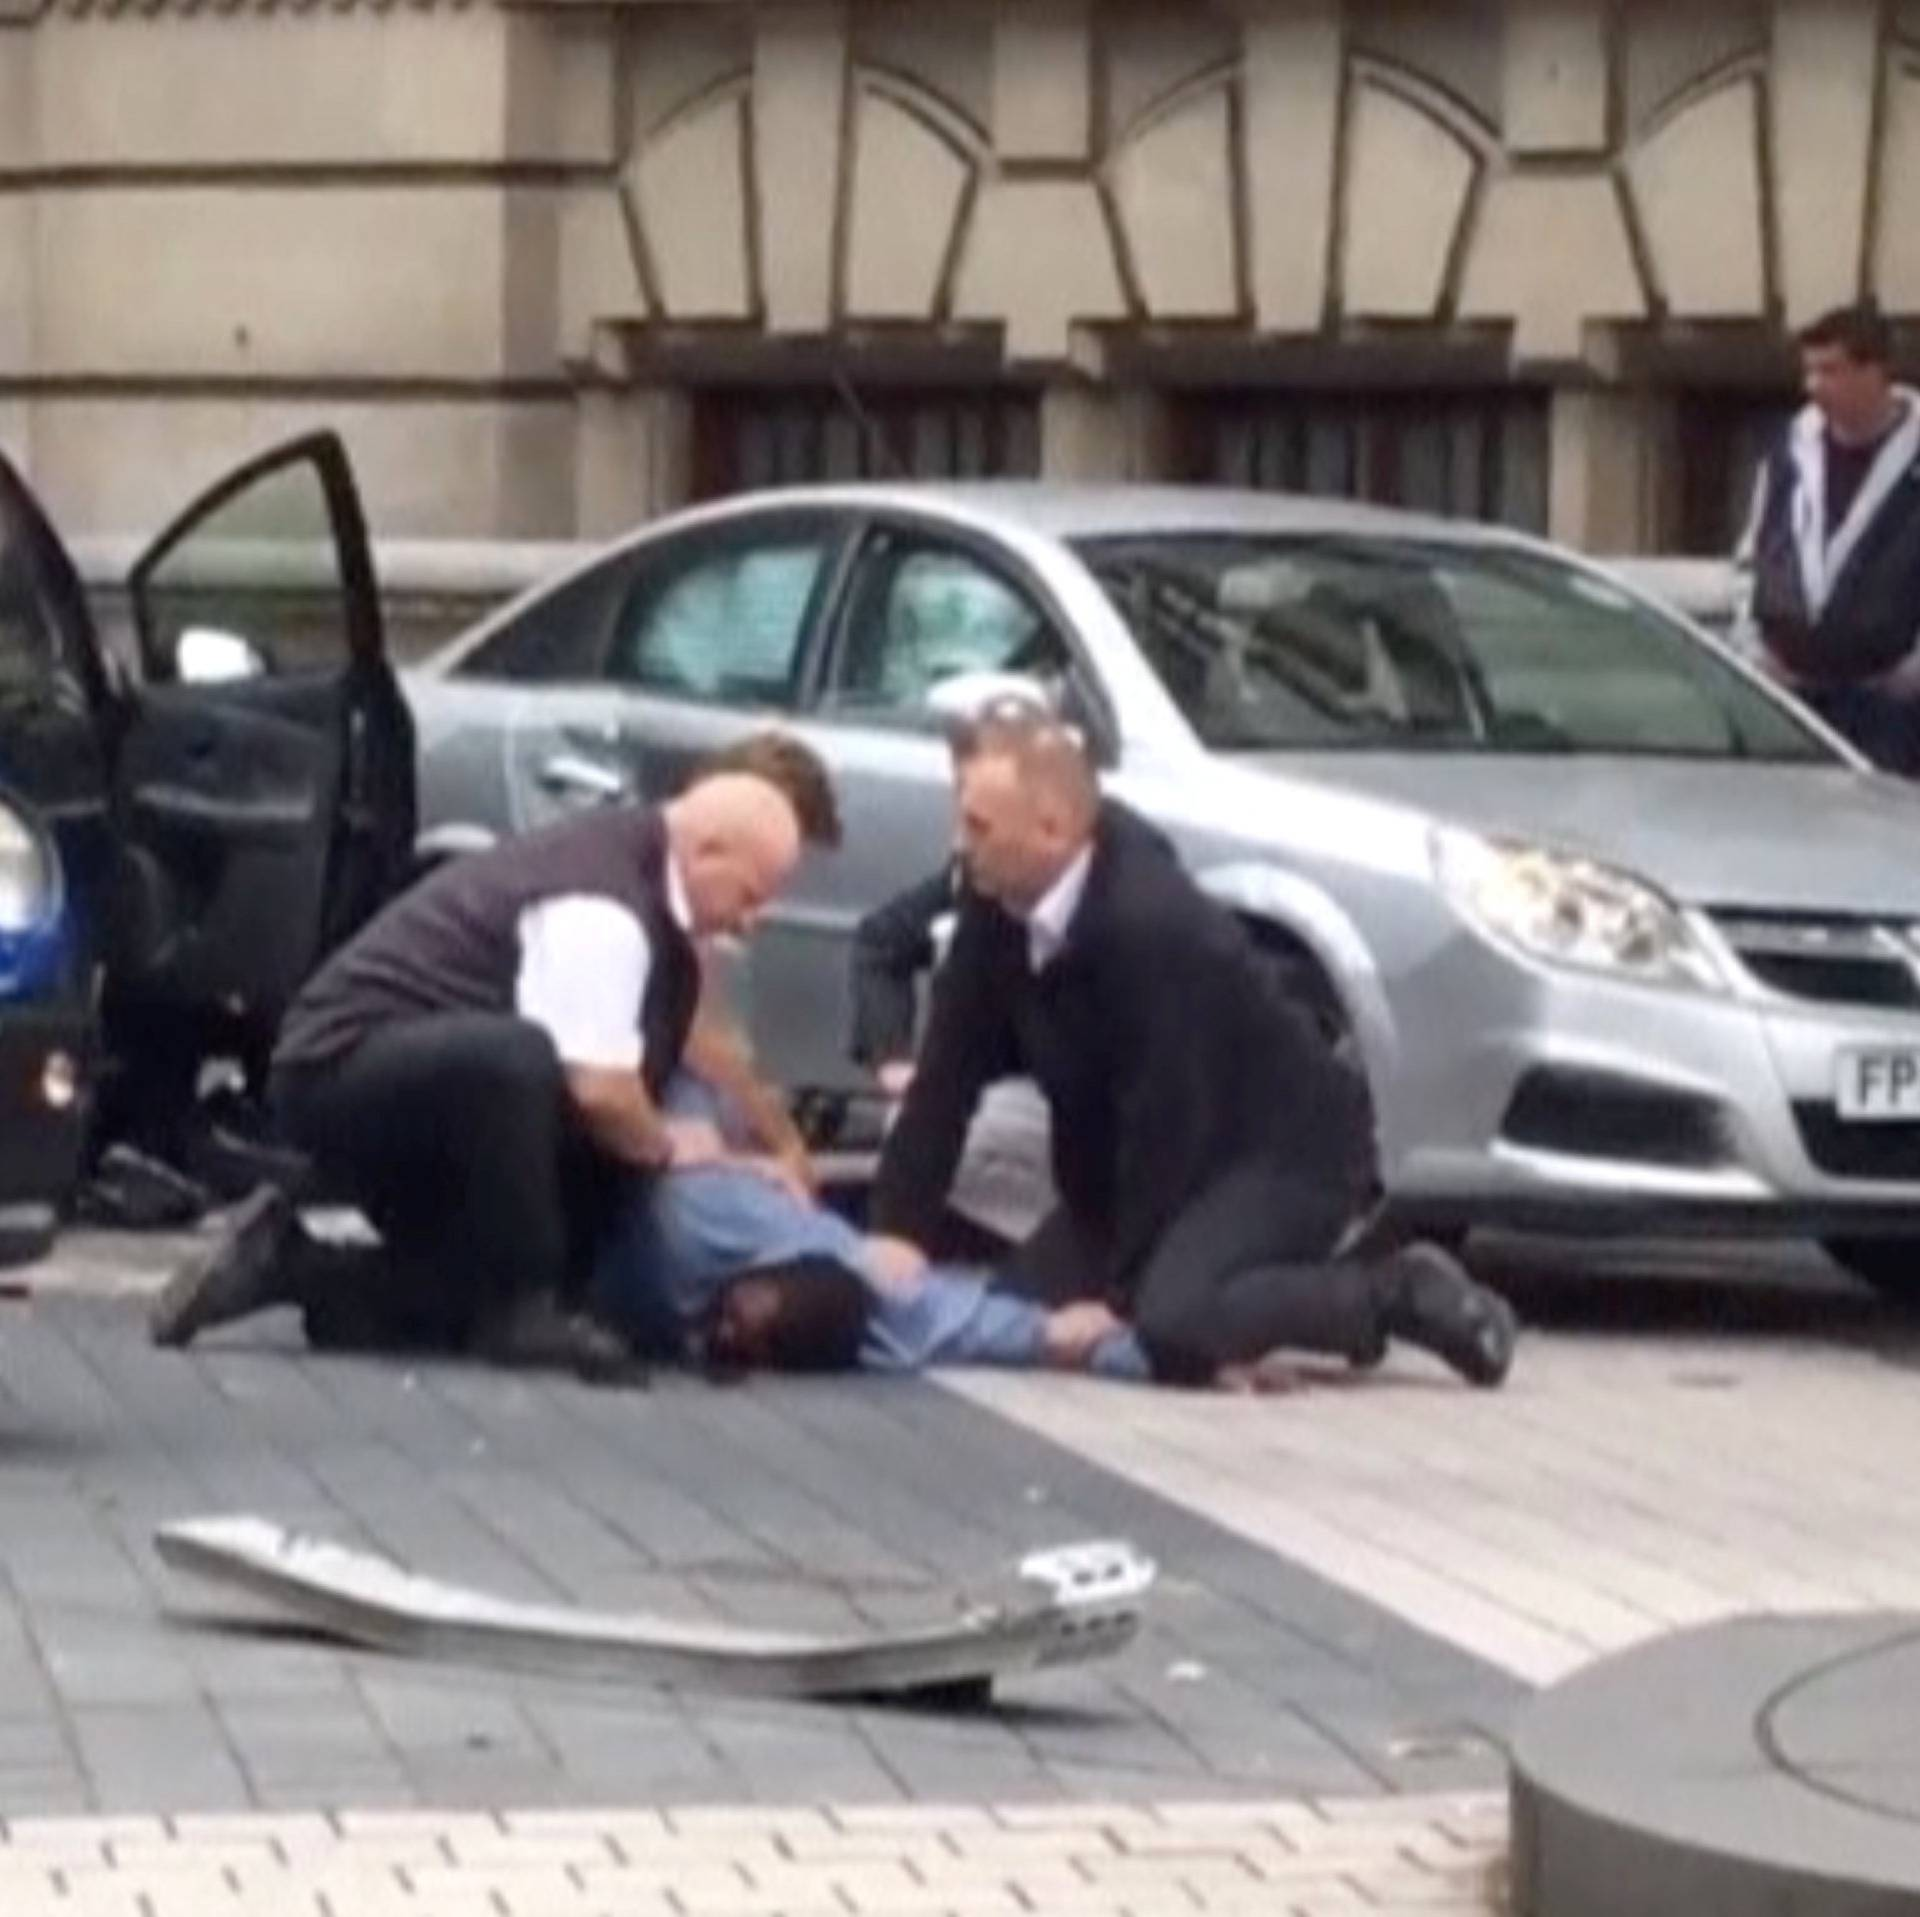 A man is being arrested by police near the Natural History Museum, in London, Britain, in this still image from a video